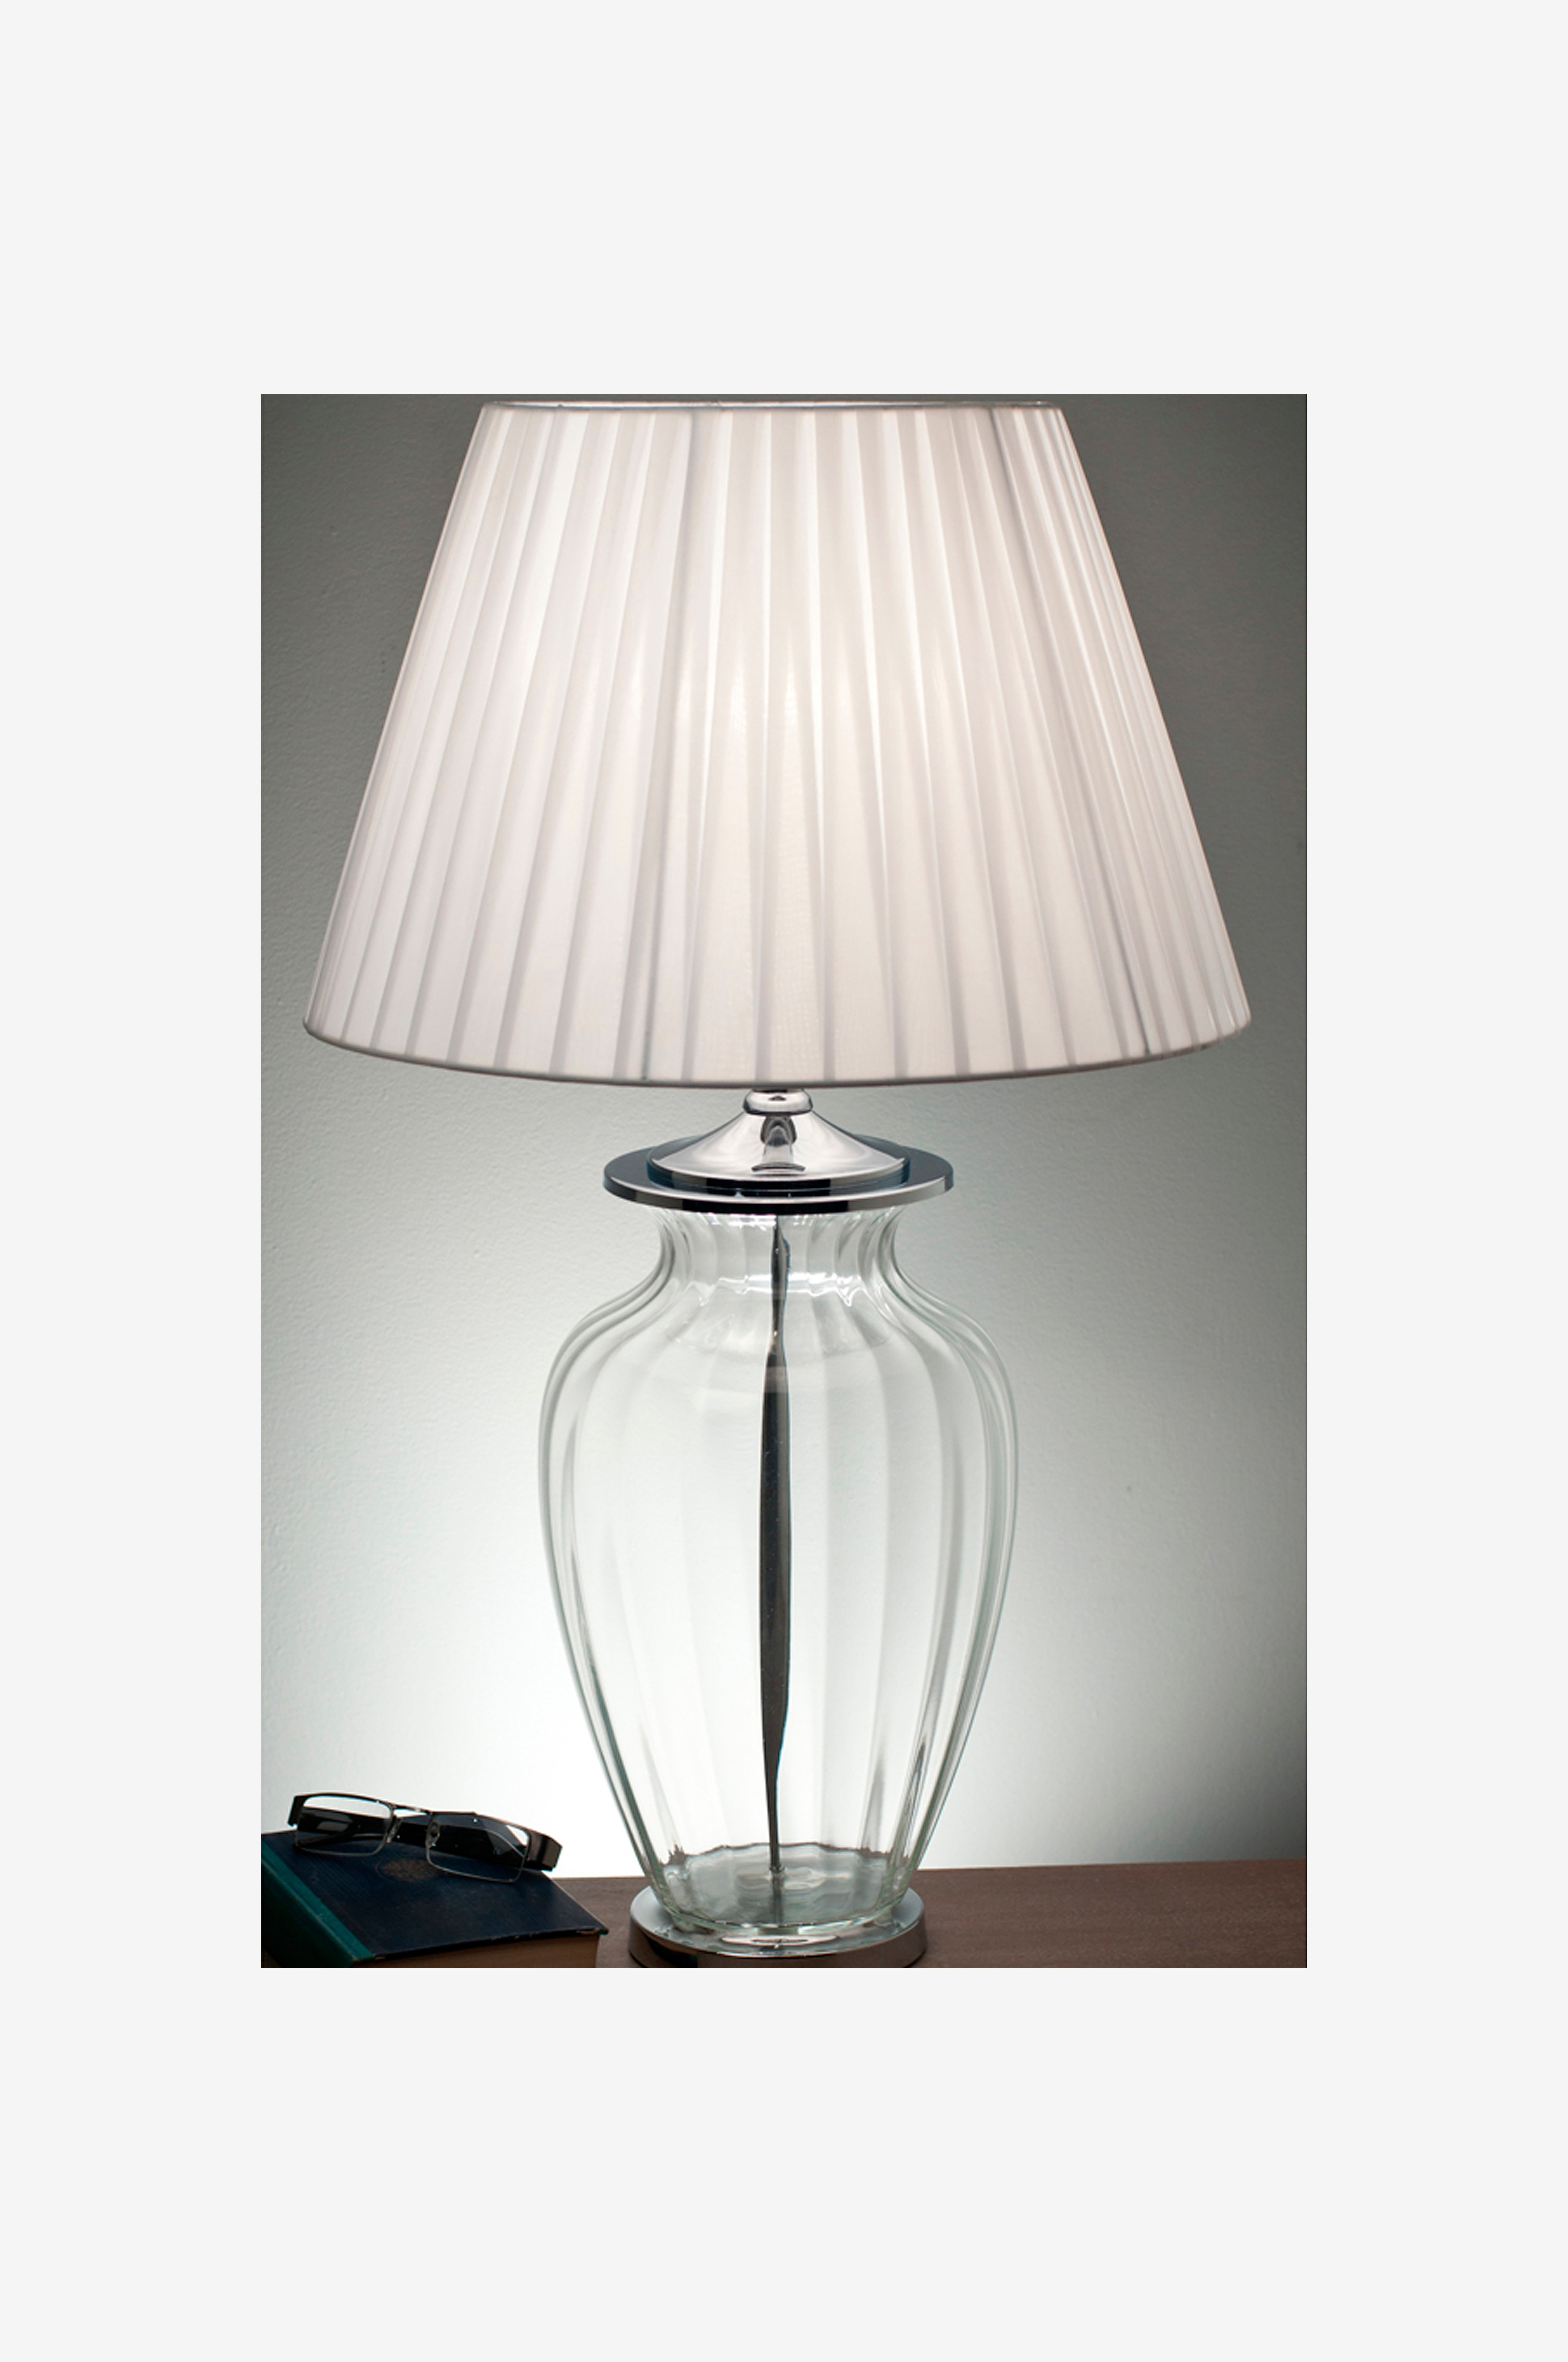 AG Home & Light Bordslampa Tabitha - Silver - Bordslampor kNswQ